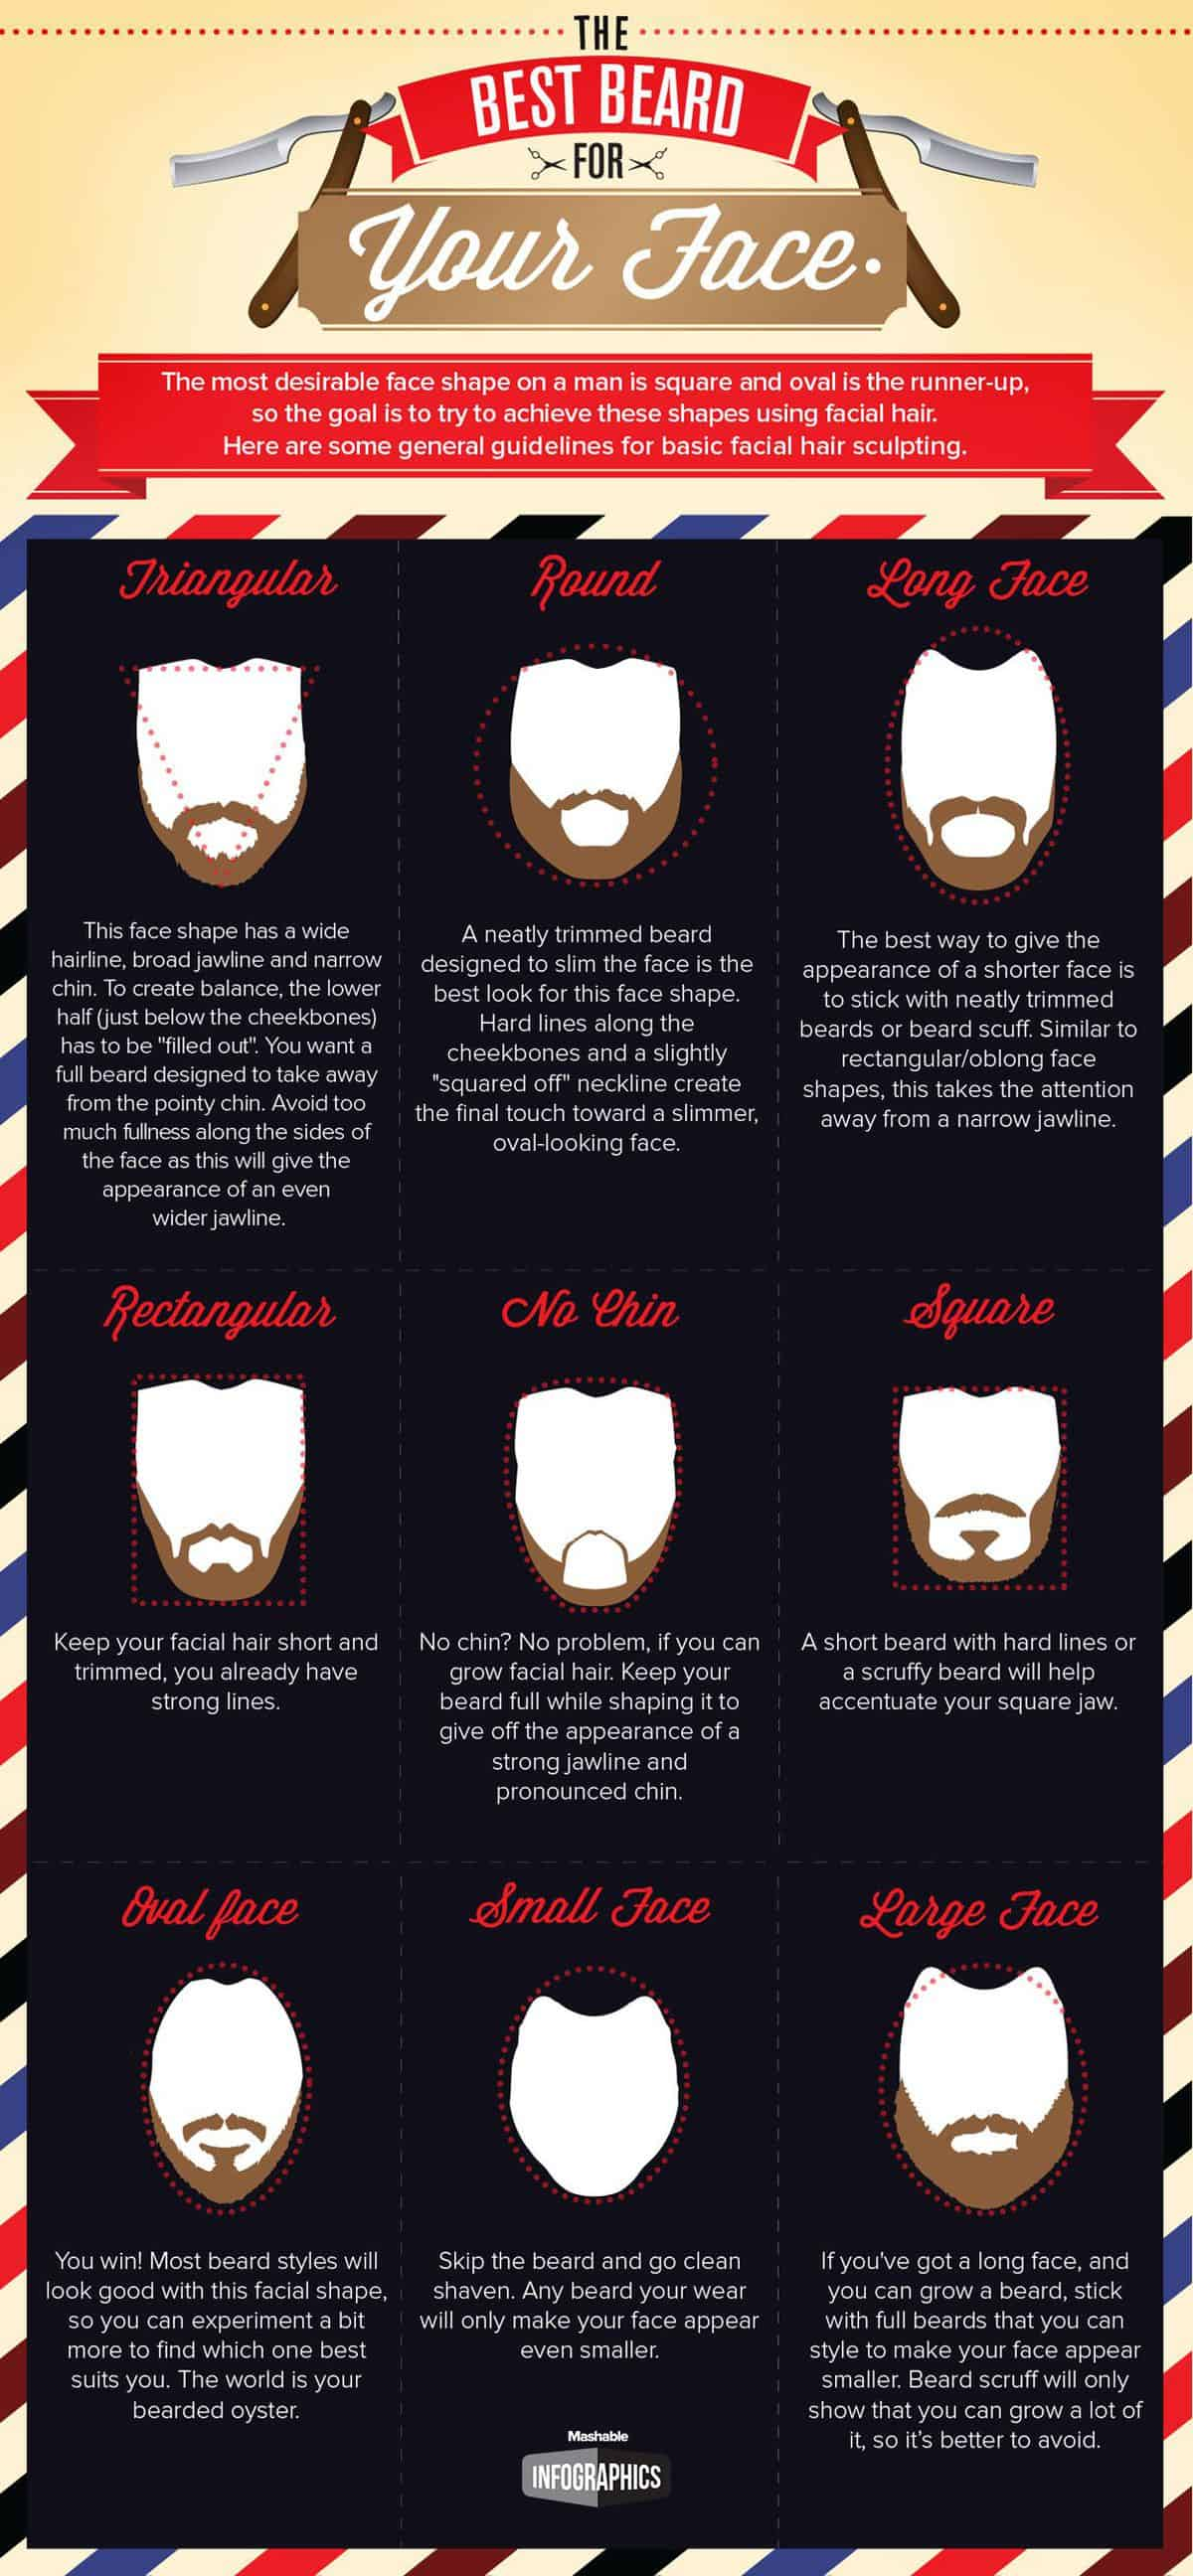 Astounding The Best Beard For Your Face Daily Infographic Schematic Wiring Diagrams Phreekkolirunnerswayorg